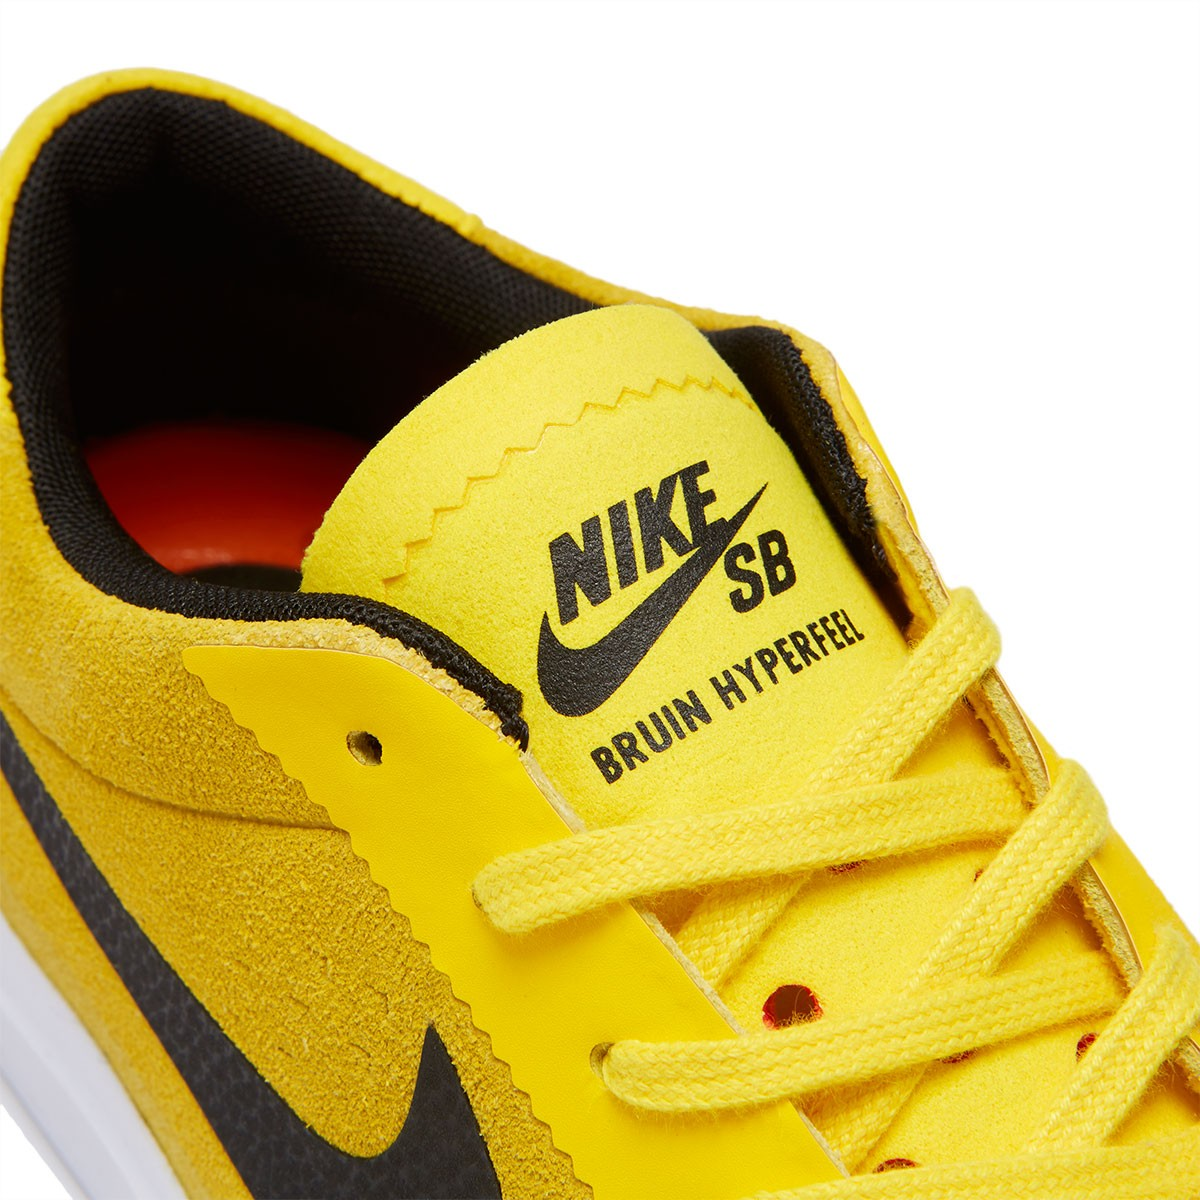 nike sb brian anderson bruin hyperfeel shoes. Black Bedroom Furniture Sets. Home Design Ideas